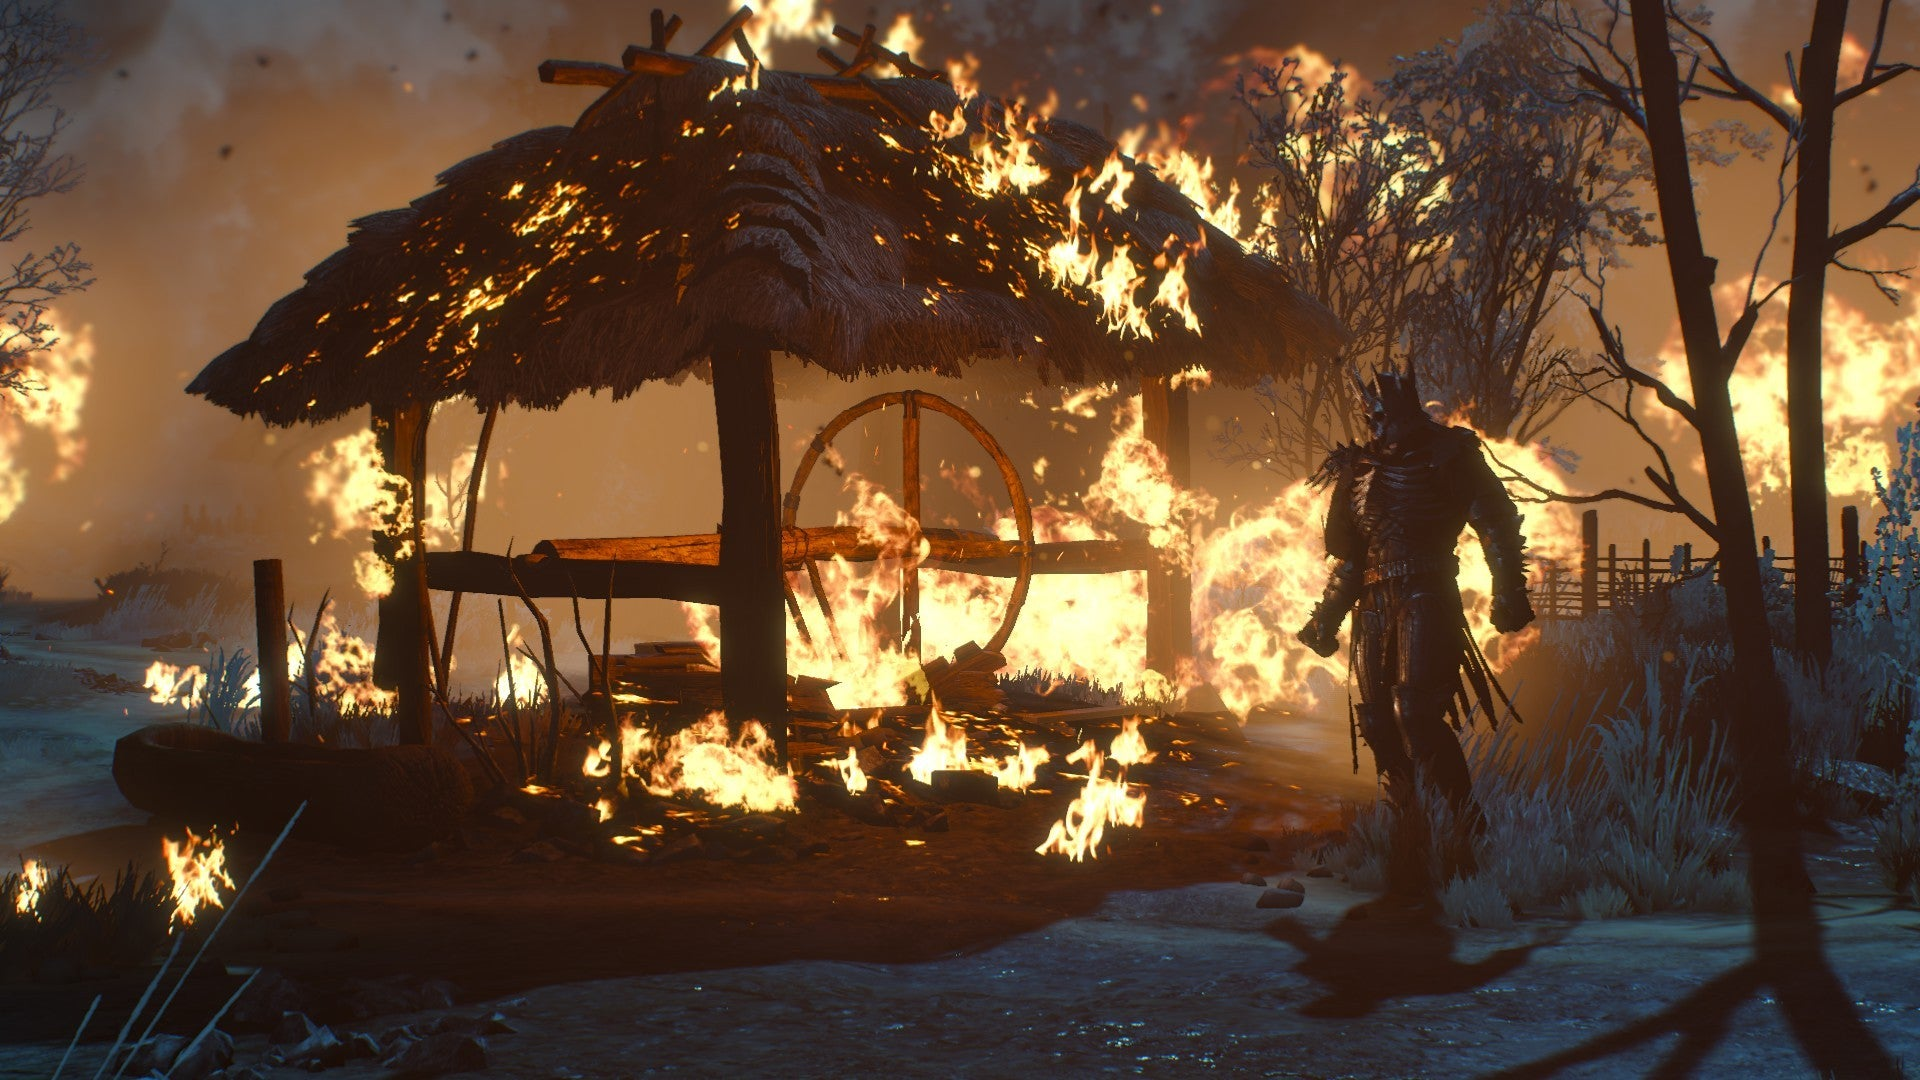 The Witcher 3: Wild Hunt (PC) review impressions: Smoothly slaying